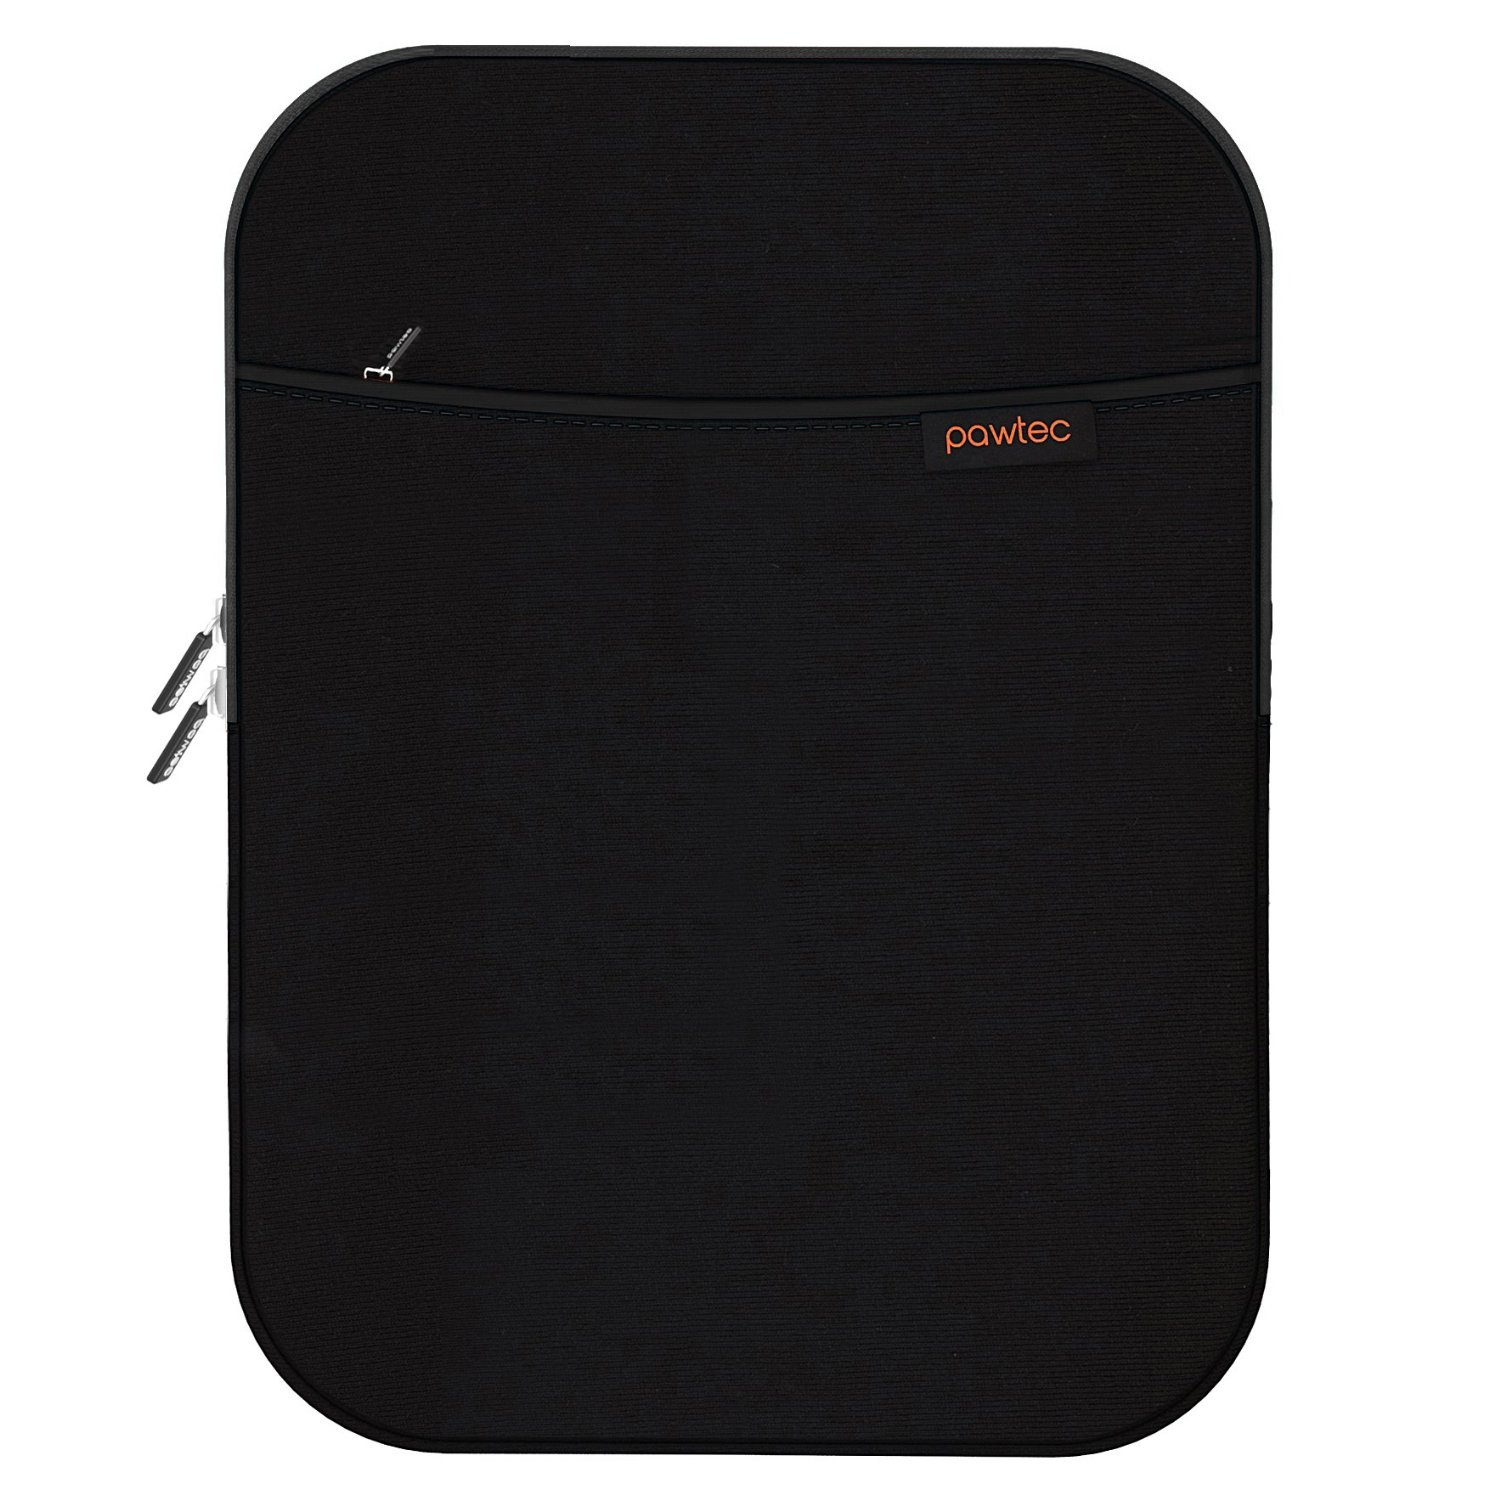 Pawtec Shockproof Neoprene Protective Storage Carrying Sleeve Case - Compatible with Apple 12.9 Inch iPad Pro Retina Tablet - With Extra Storage Pocket for Accessories and Wall Charger (Black)